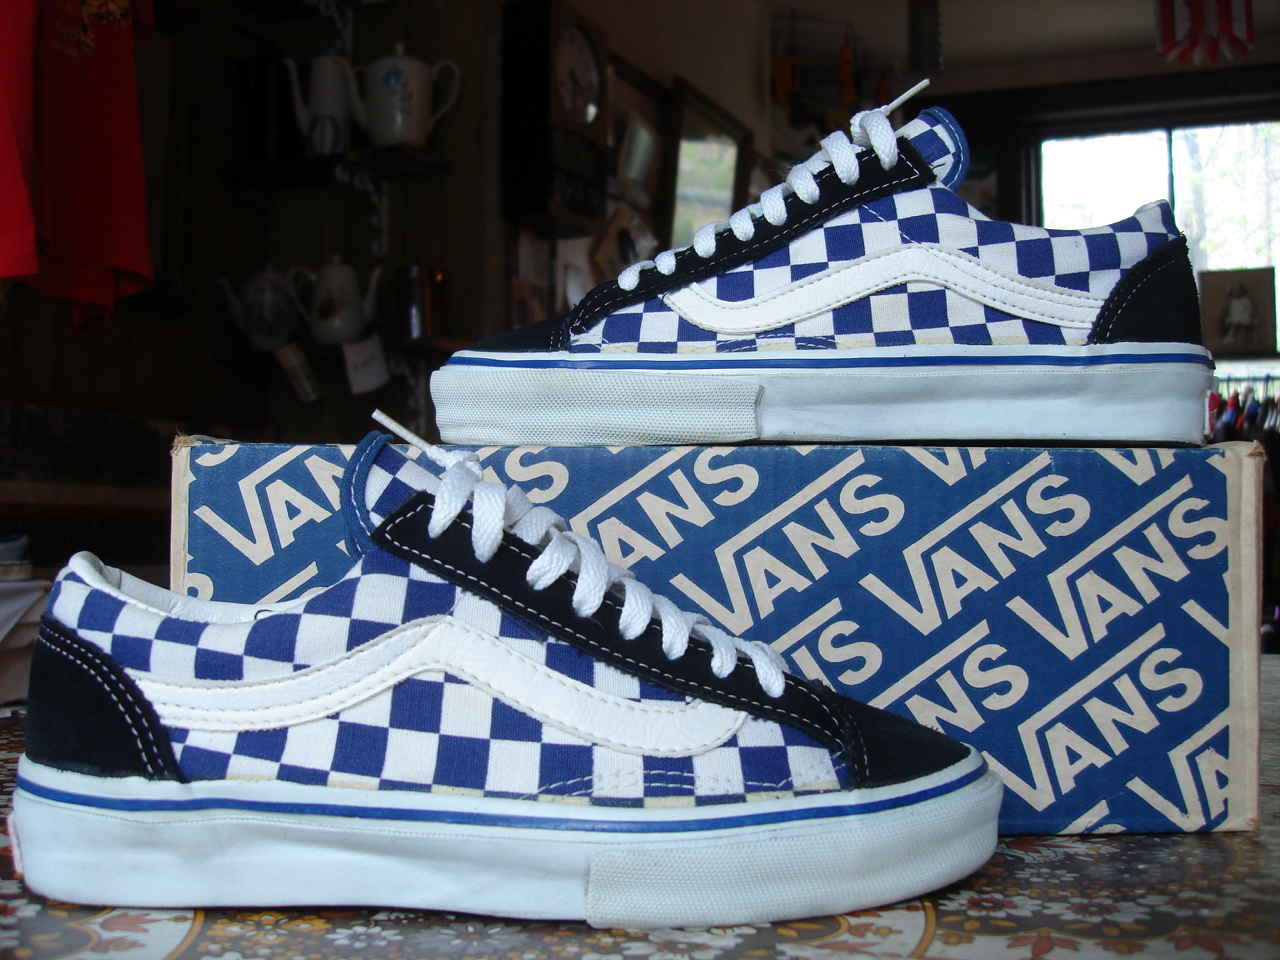 140891793e theothersideofthepillow  vintage VANS checkerboard OLD SKOOL style  36 MADE  IN USA skate bmx US7 checker